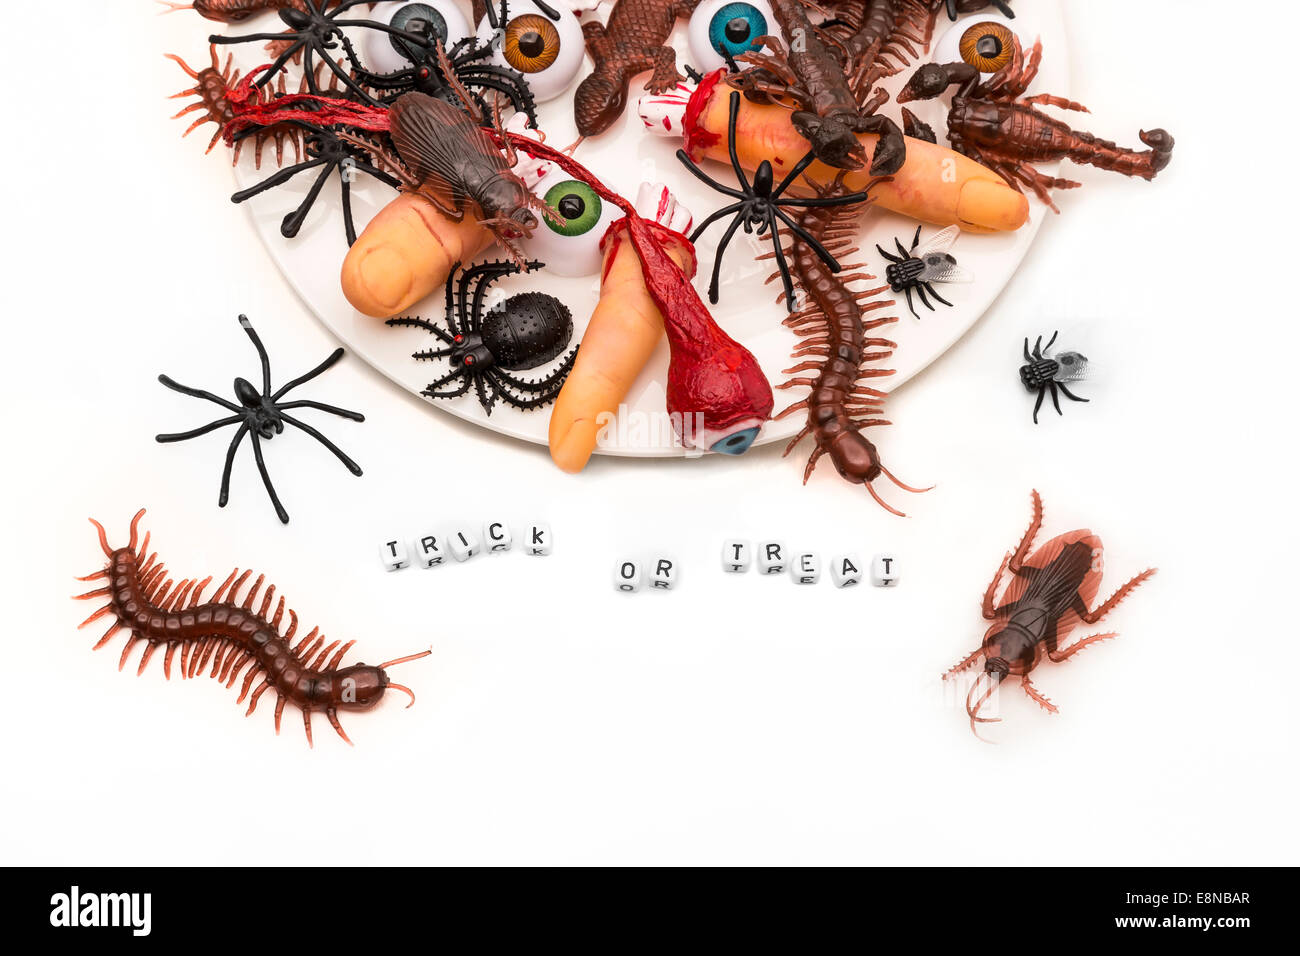 Trick or treat words surrounded by candy bugs, joke plastic fingers and eyeballs on an overflowing dish onto a white - Stock Image